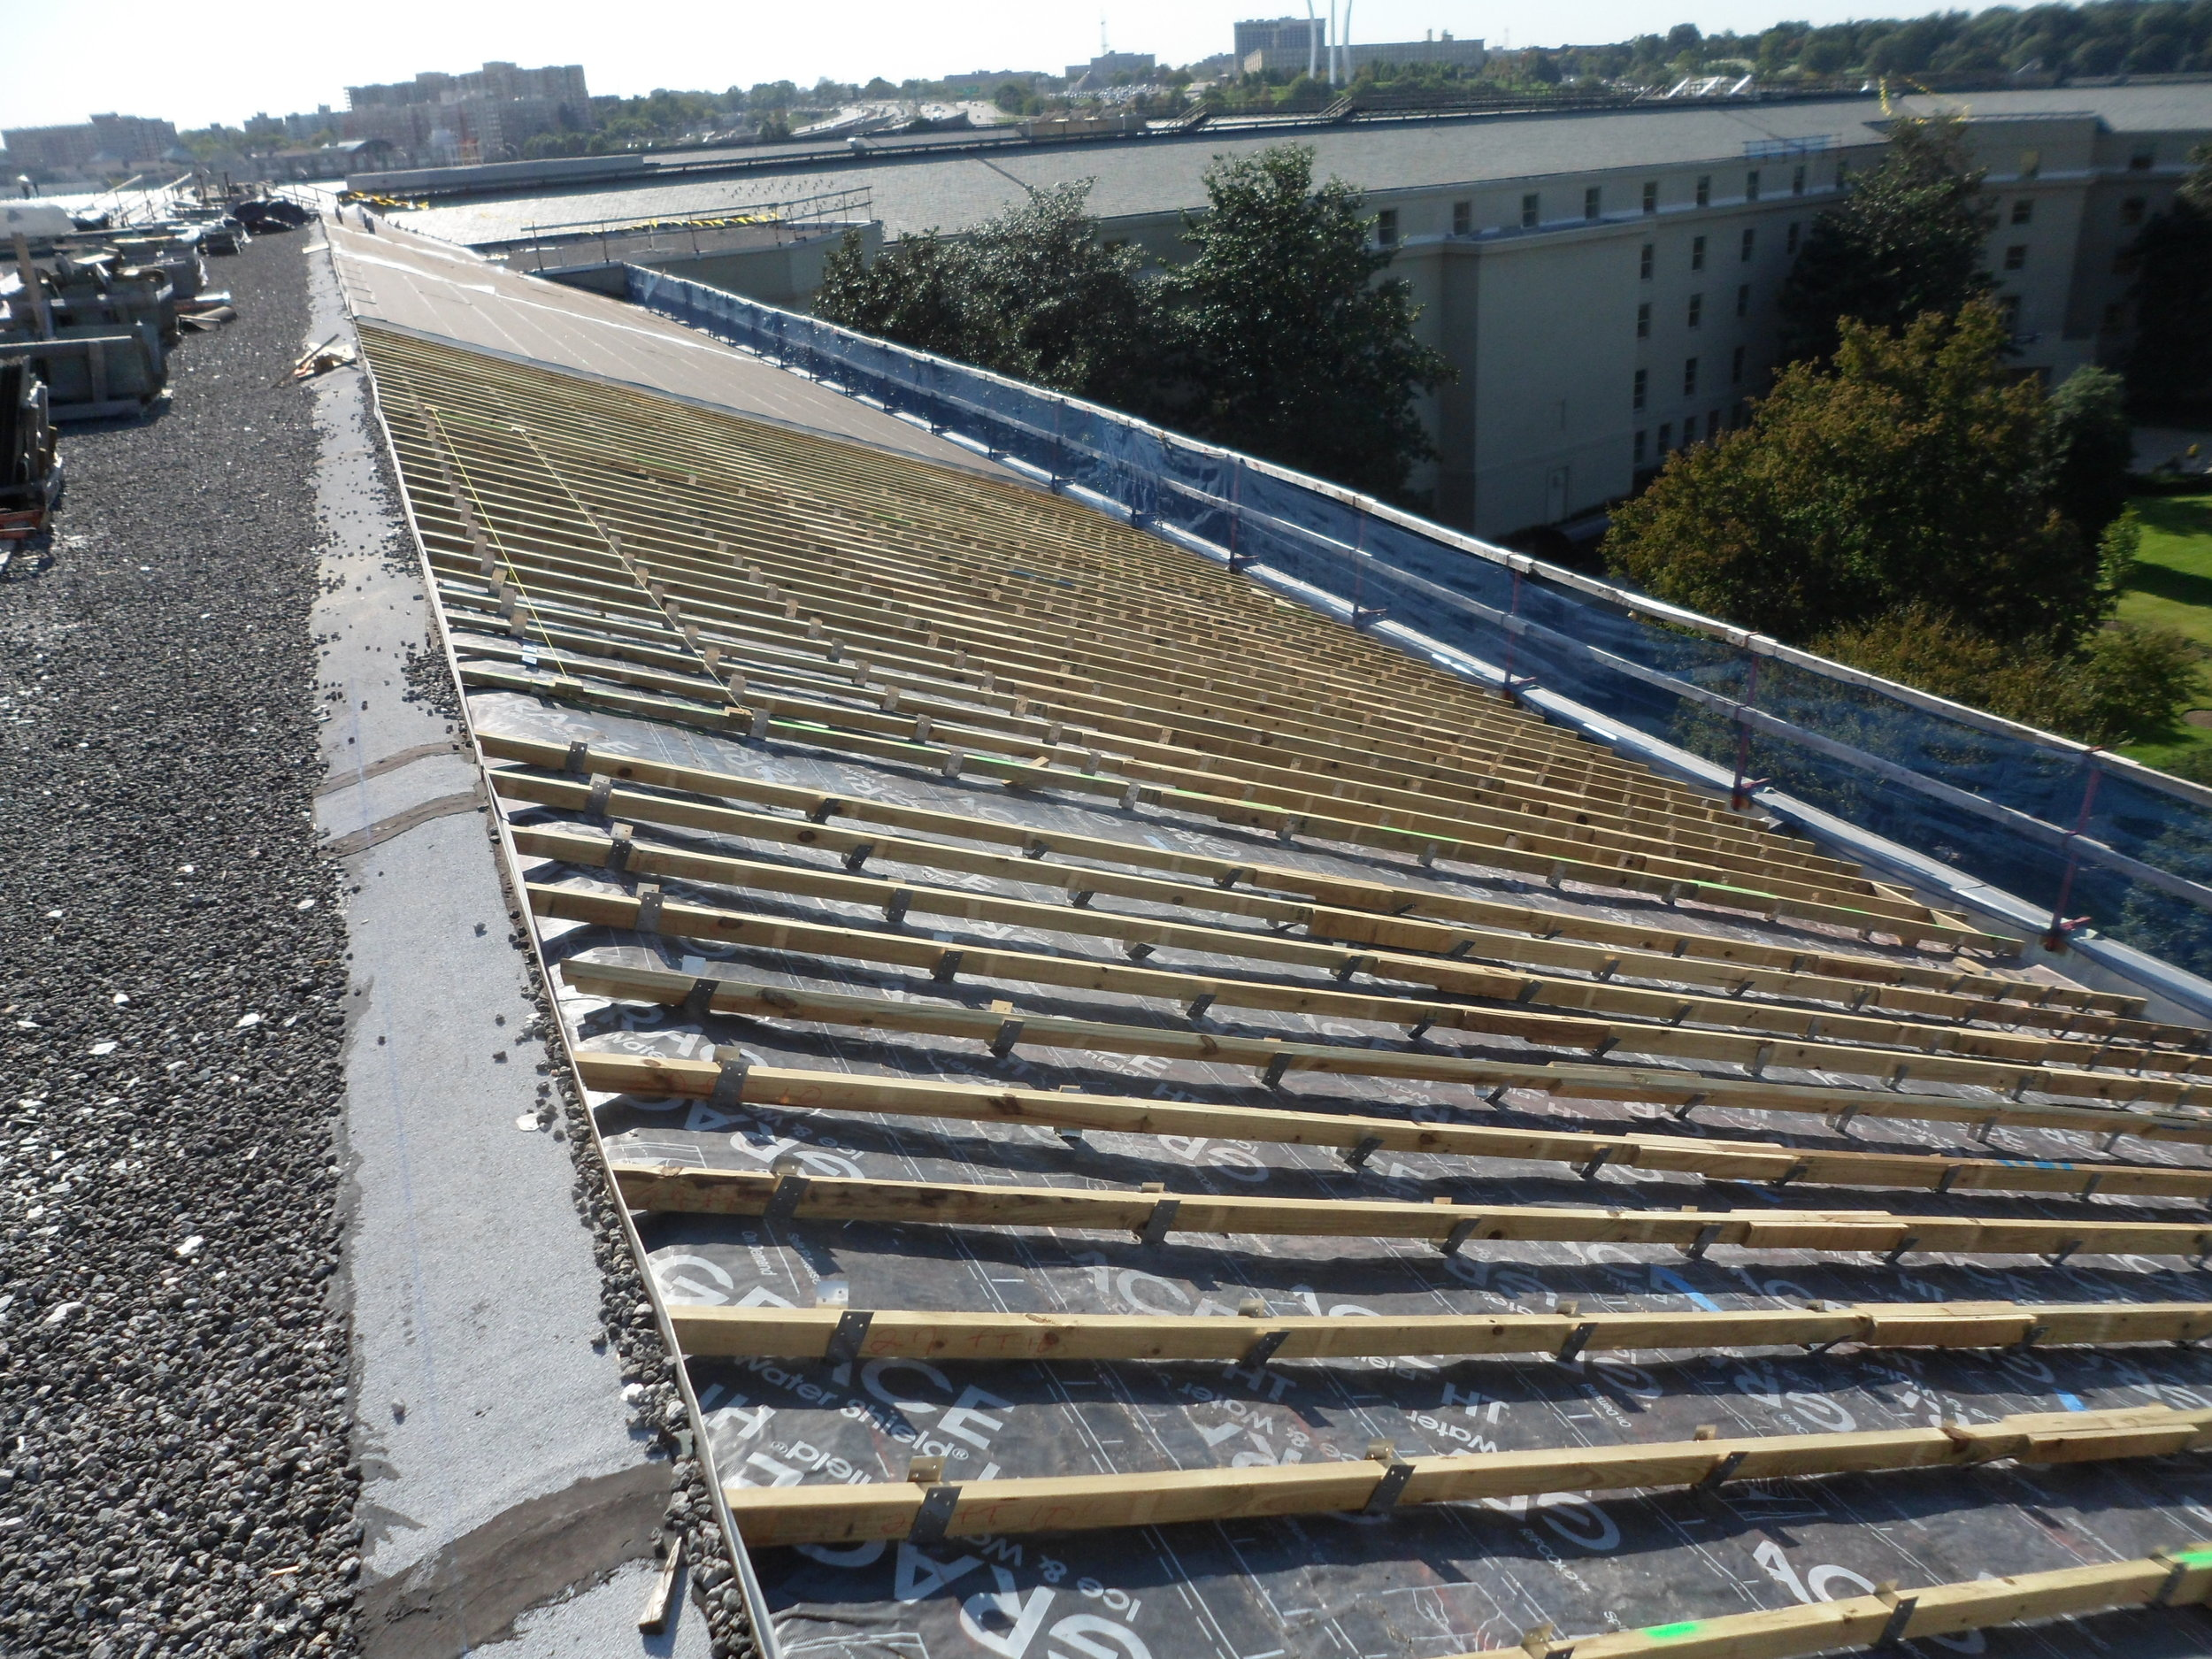 Pentagon Iconic Roof Replacement & Restoration